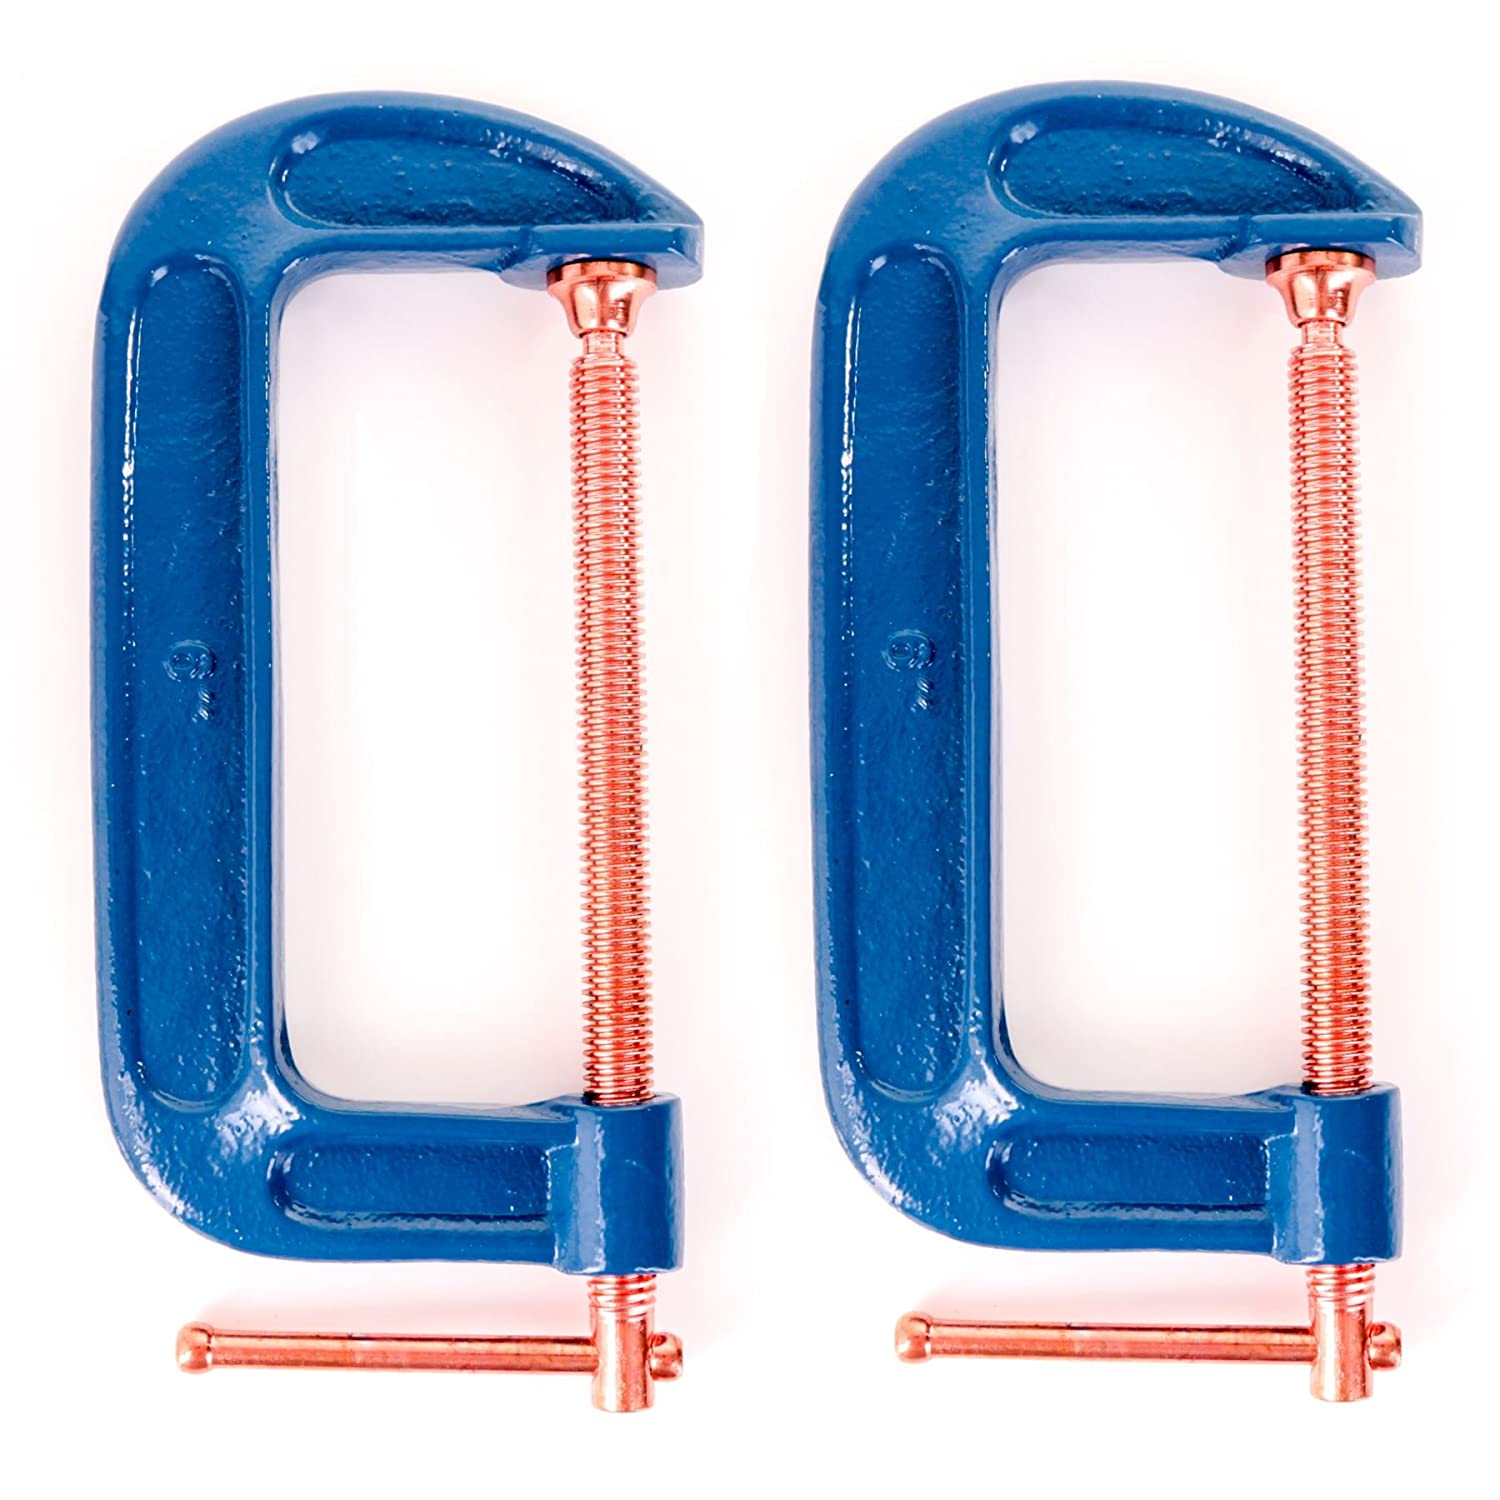 2x Large 150mm/6' Reinforced Cast Iron G Clamps White Hinge